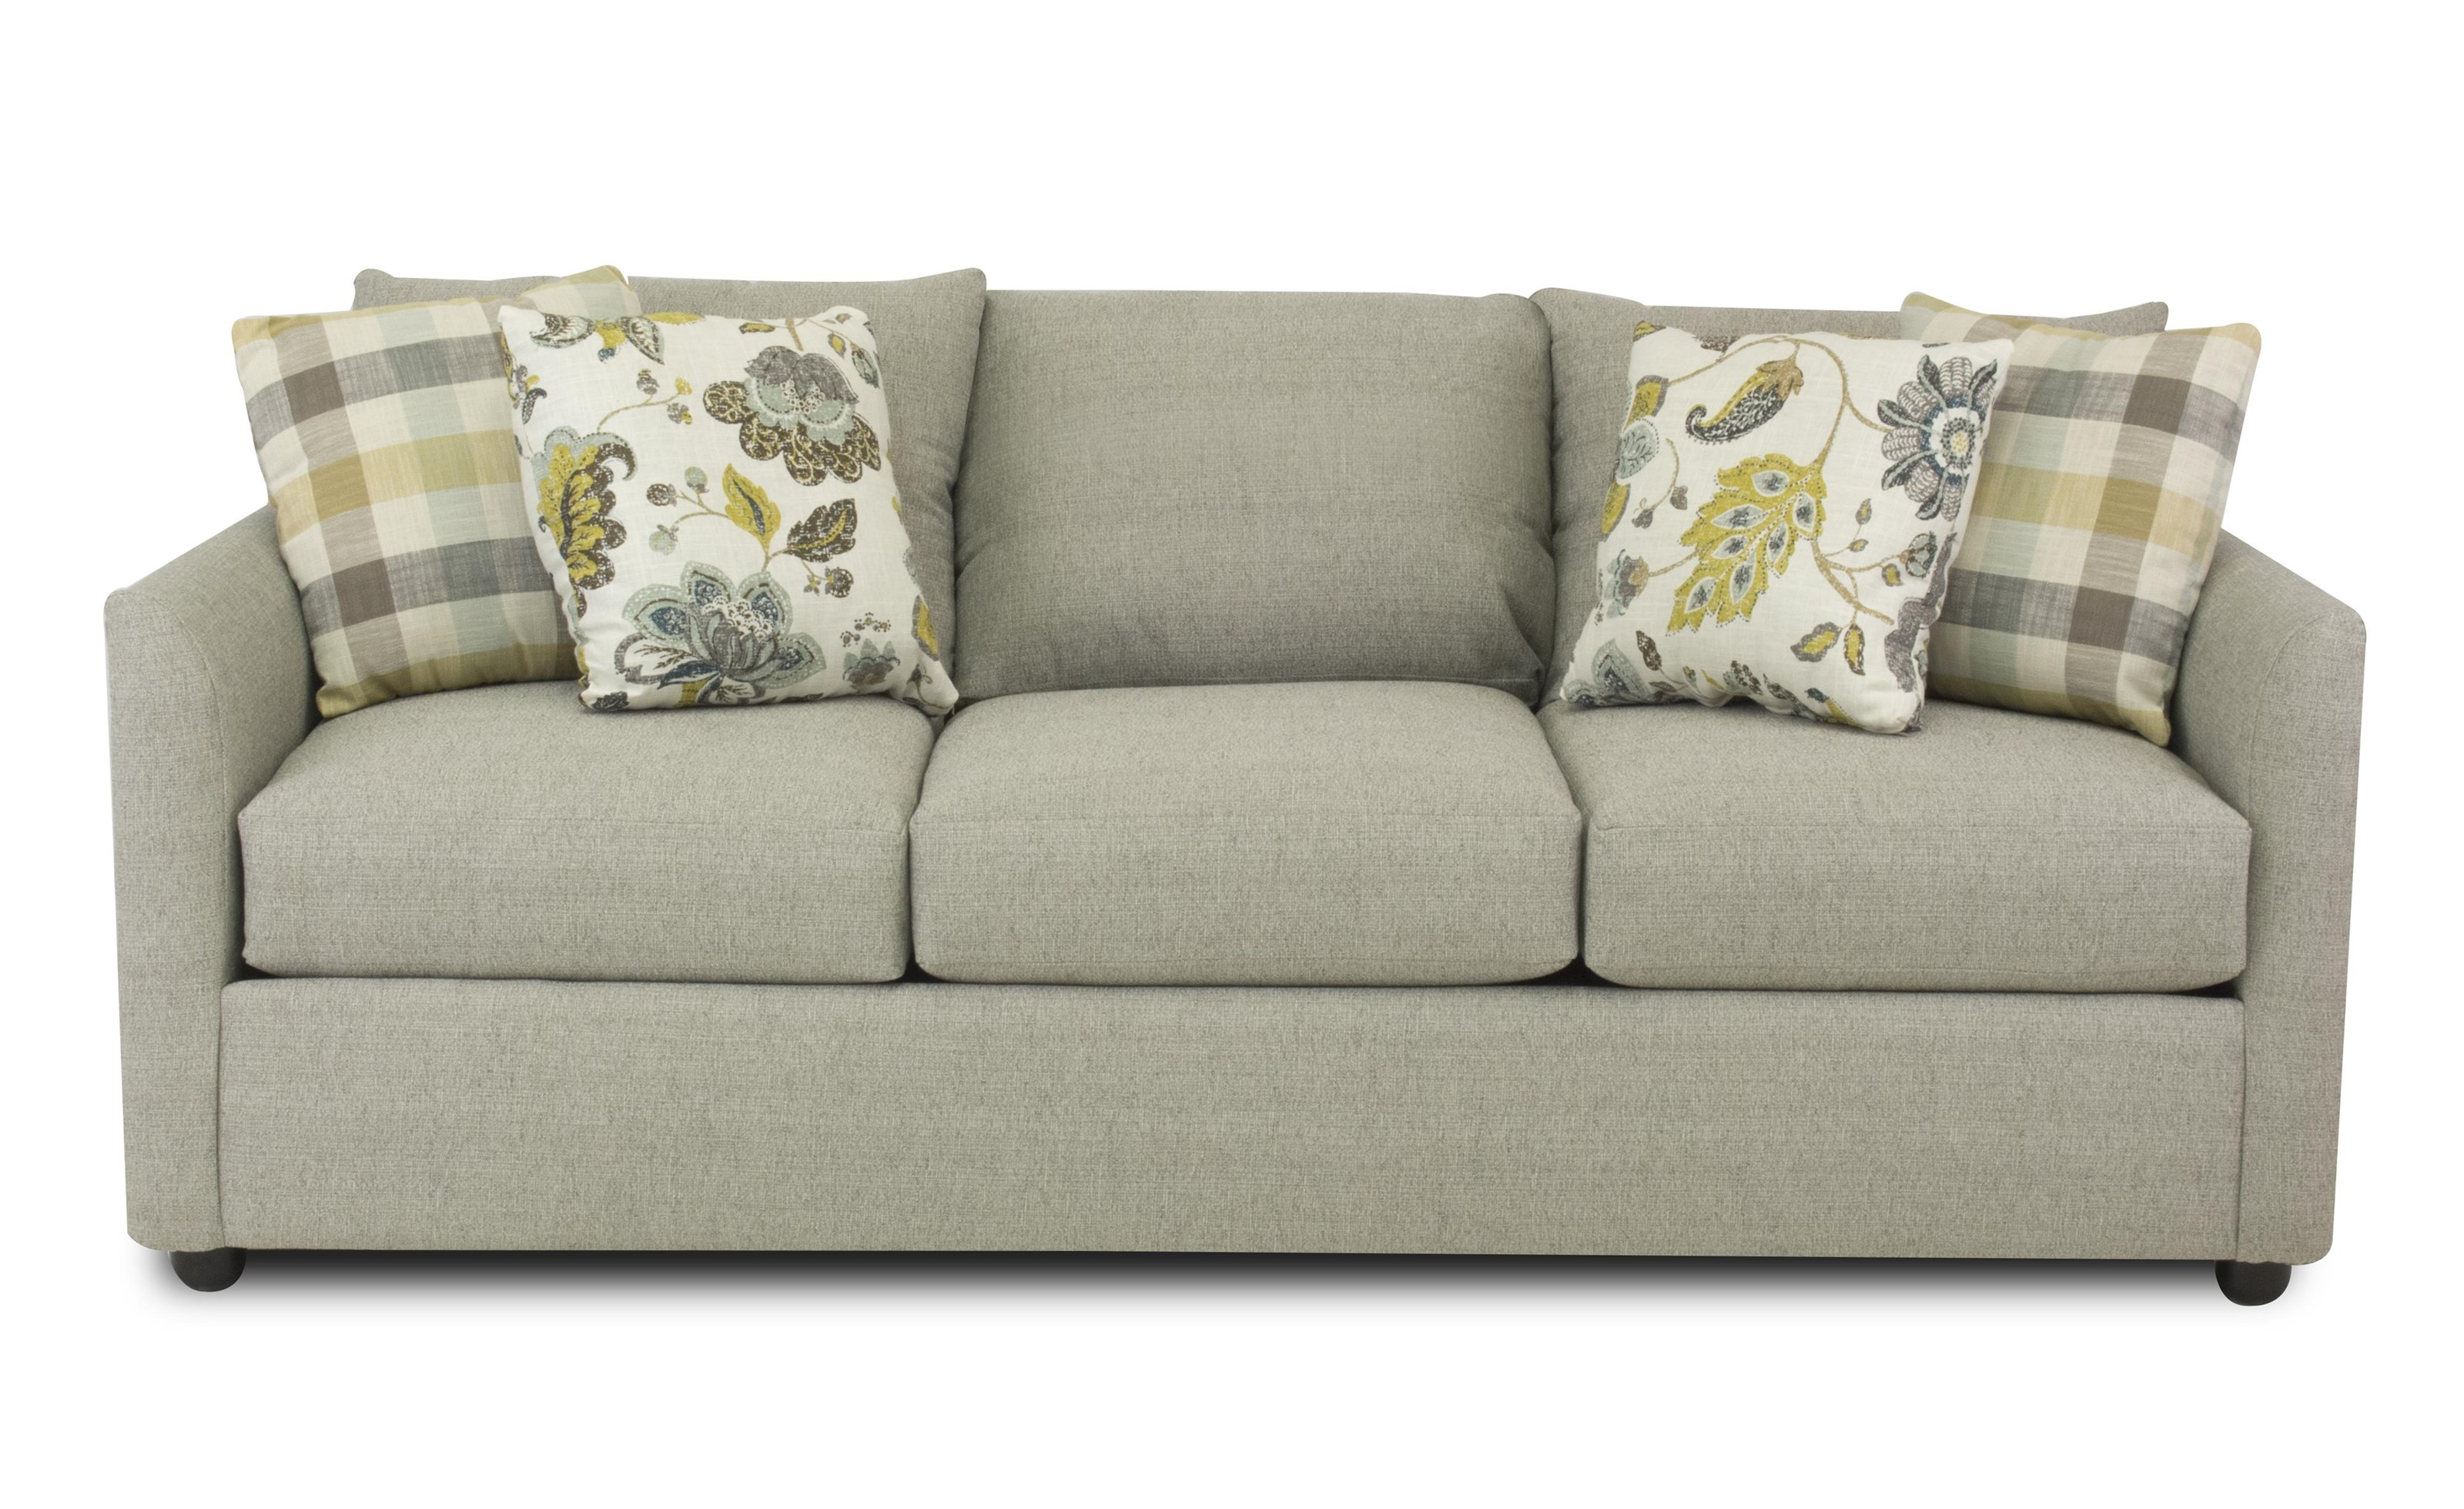 Attractive Trisha Yearwood Home Collection By Klaussner Atlanta Sofa   Item Number:  17278 S